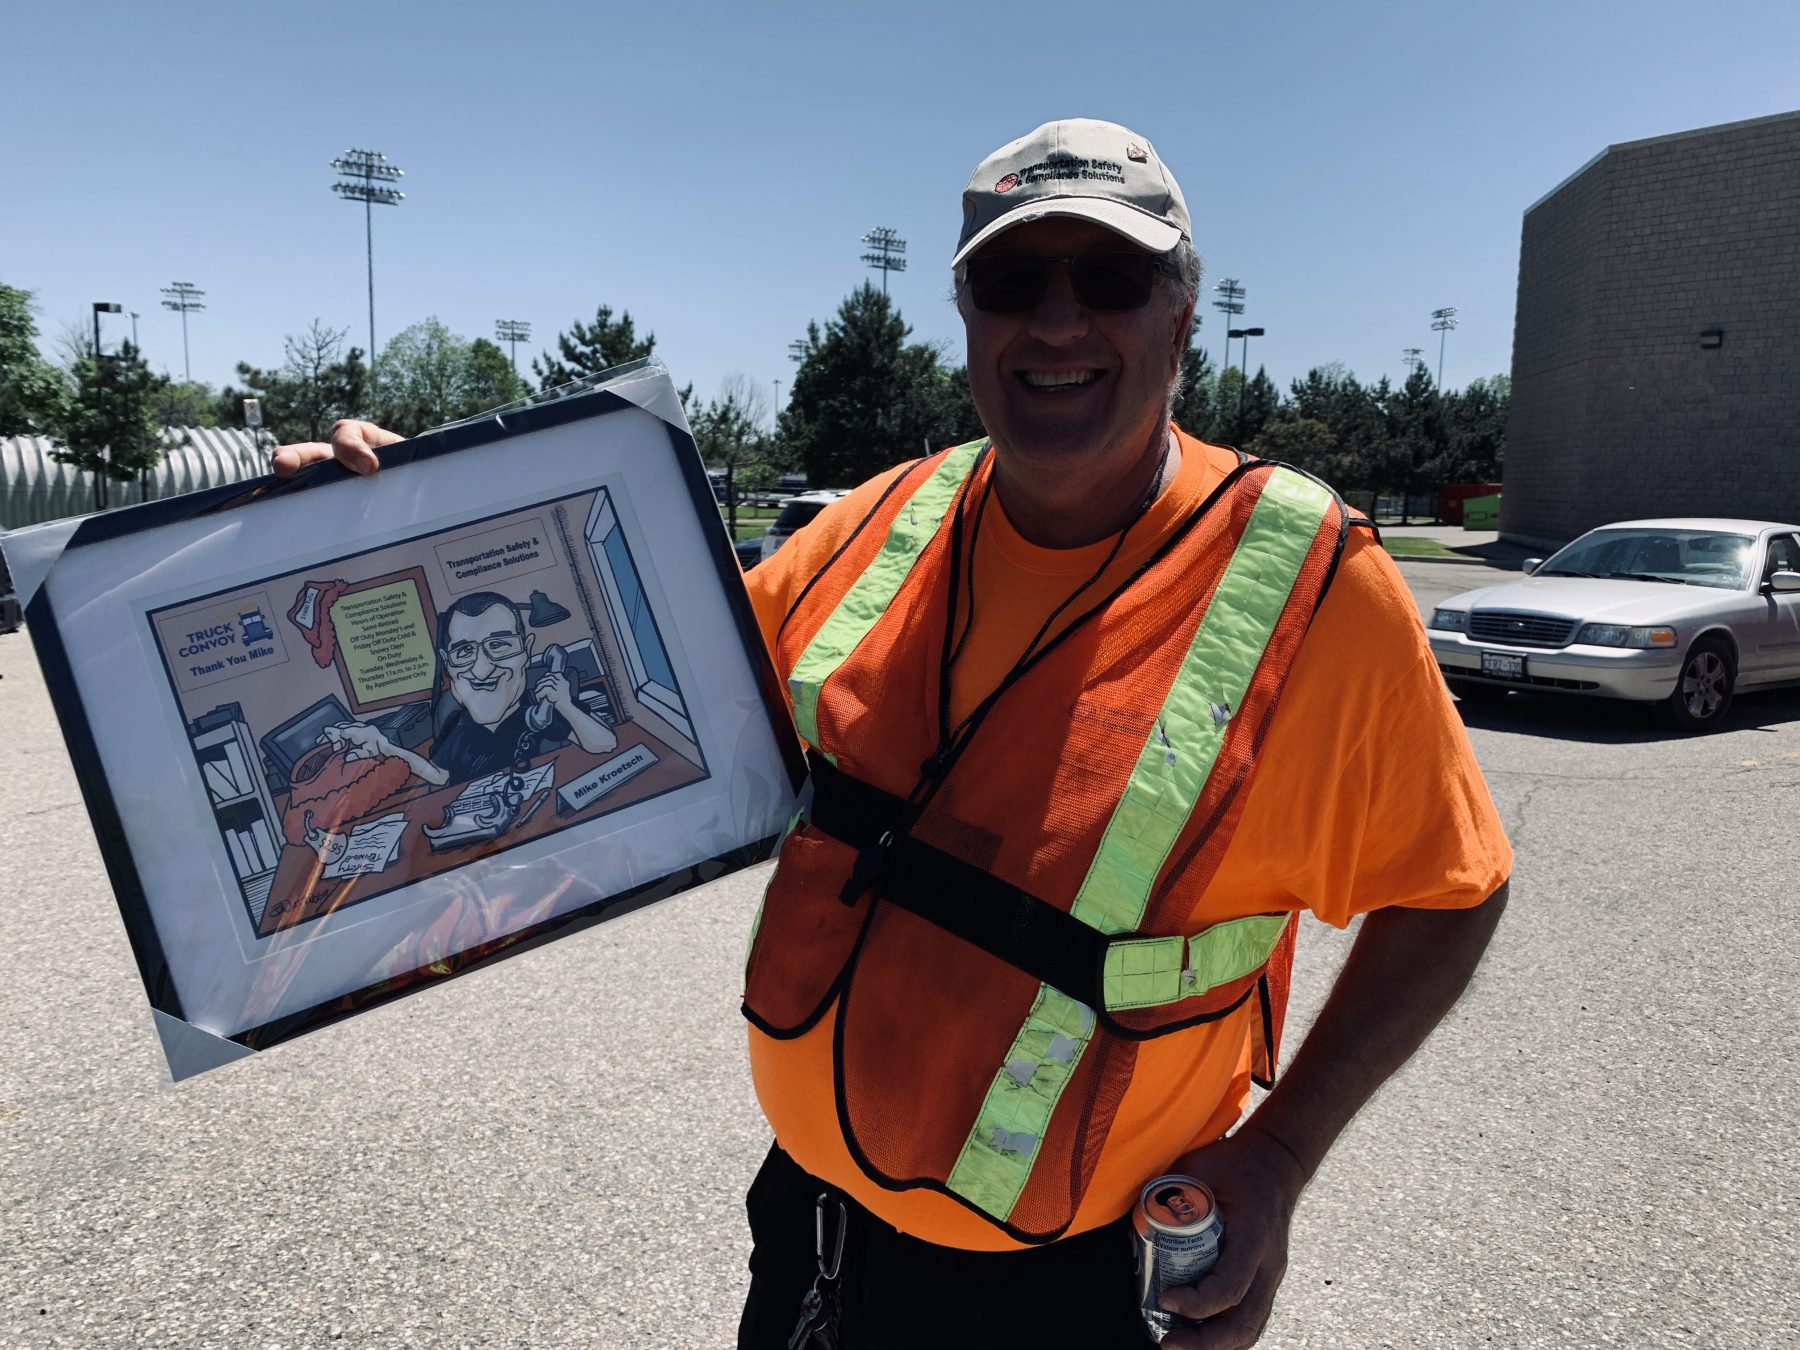 Mike with caricature